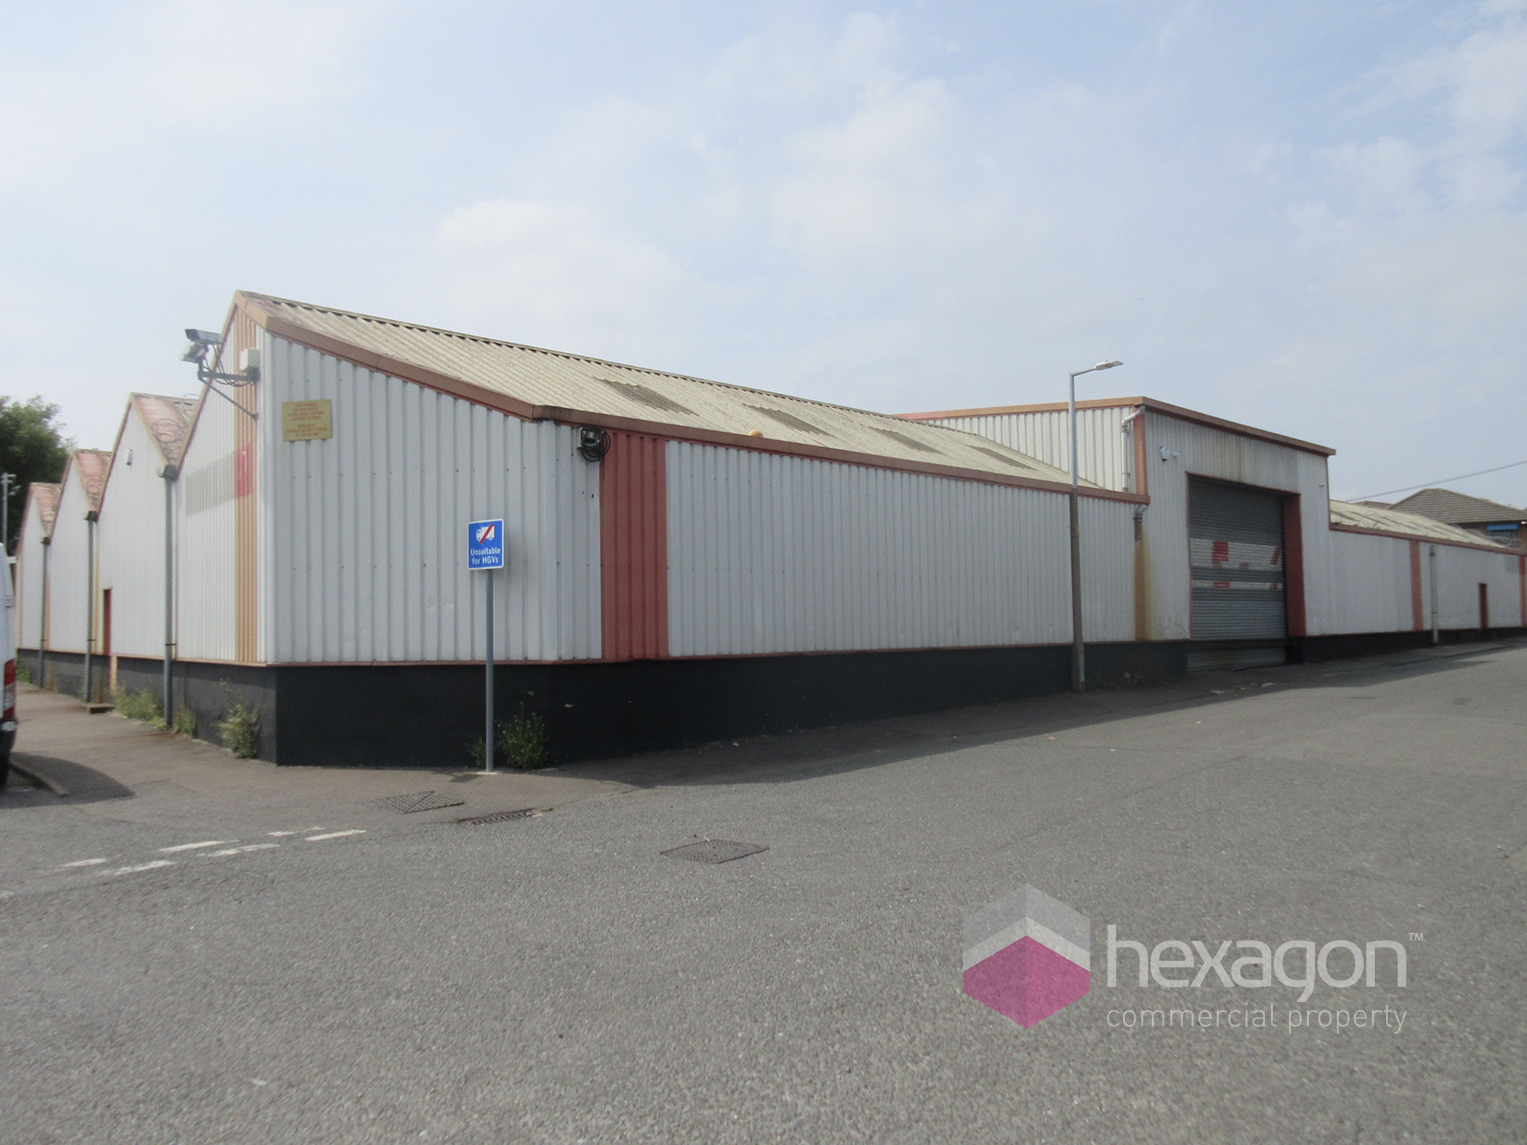 0 bed Light Industrial for rent in Tipton. From Hexagon Commercial Property